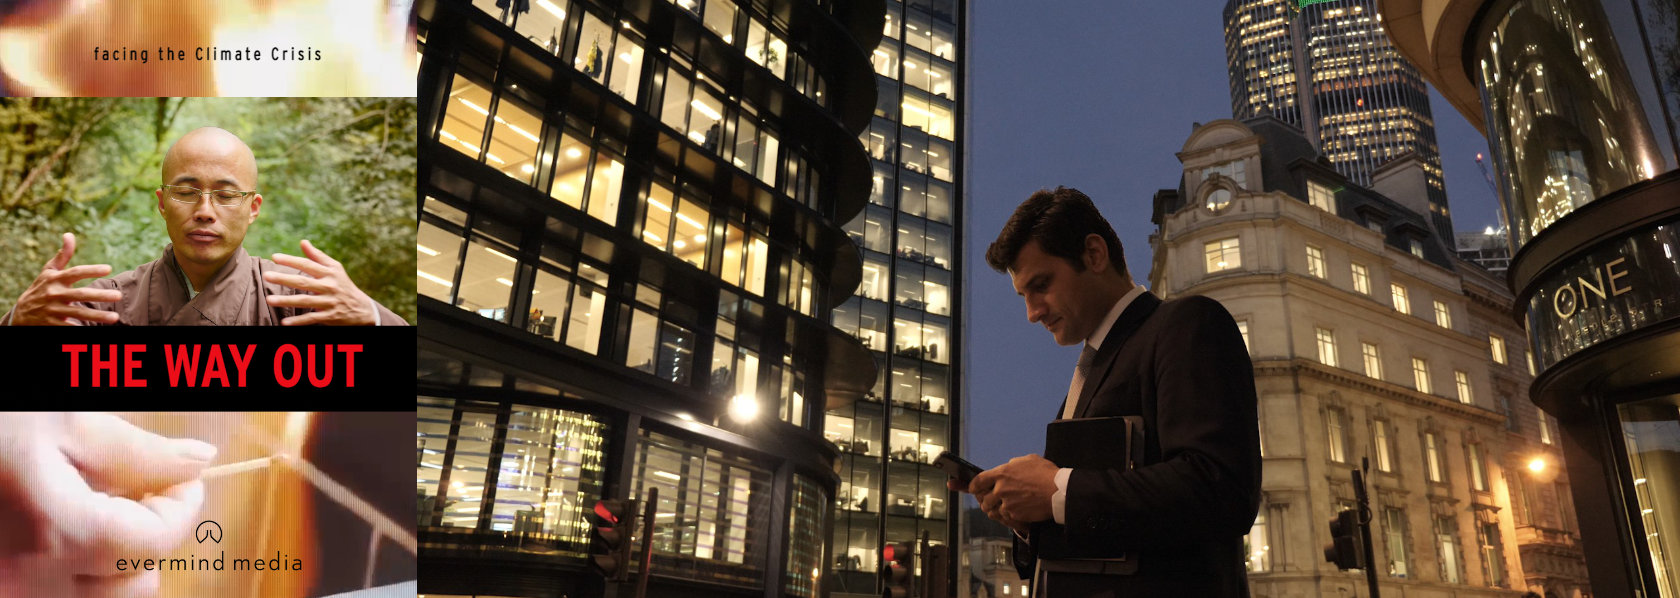 Man in a suit standing in front of office buildings - The Way Out - THIS Buddhist Film Festival